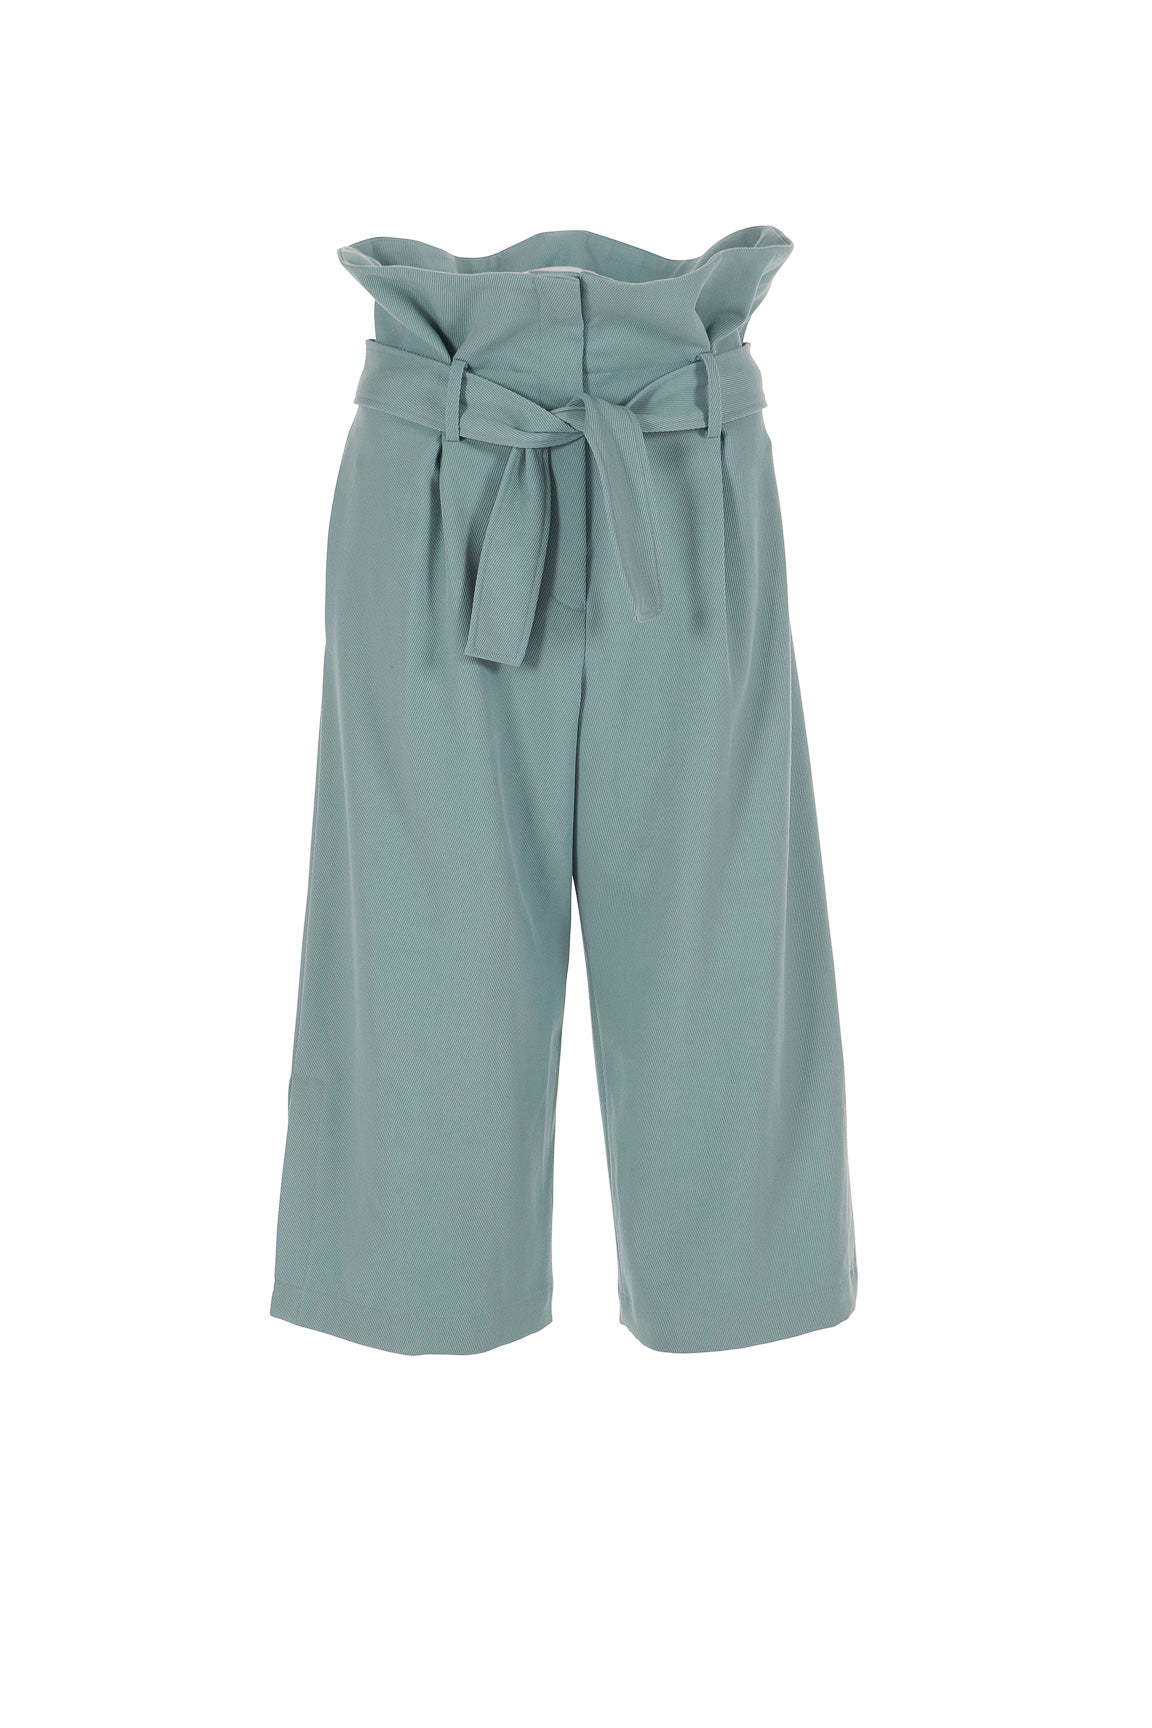 Women's High-Waisted Wide Leg Pant with Split Cuff